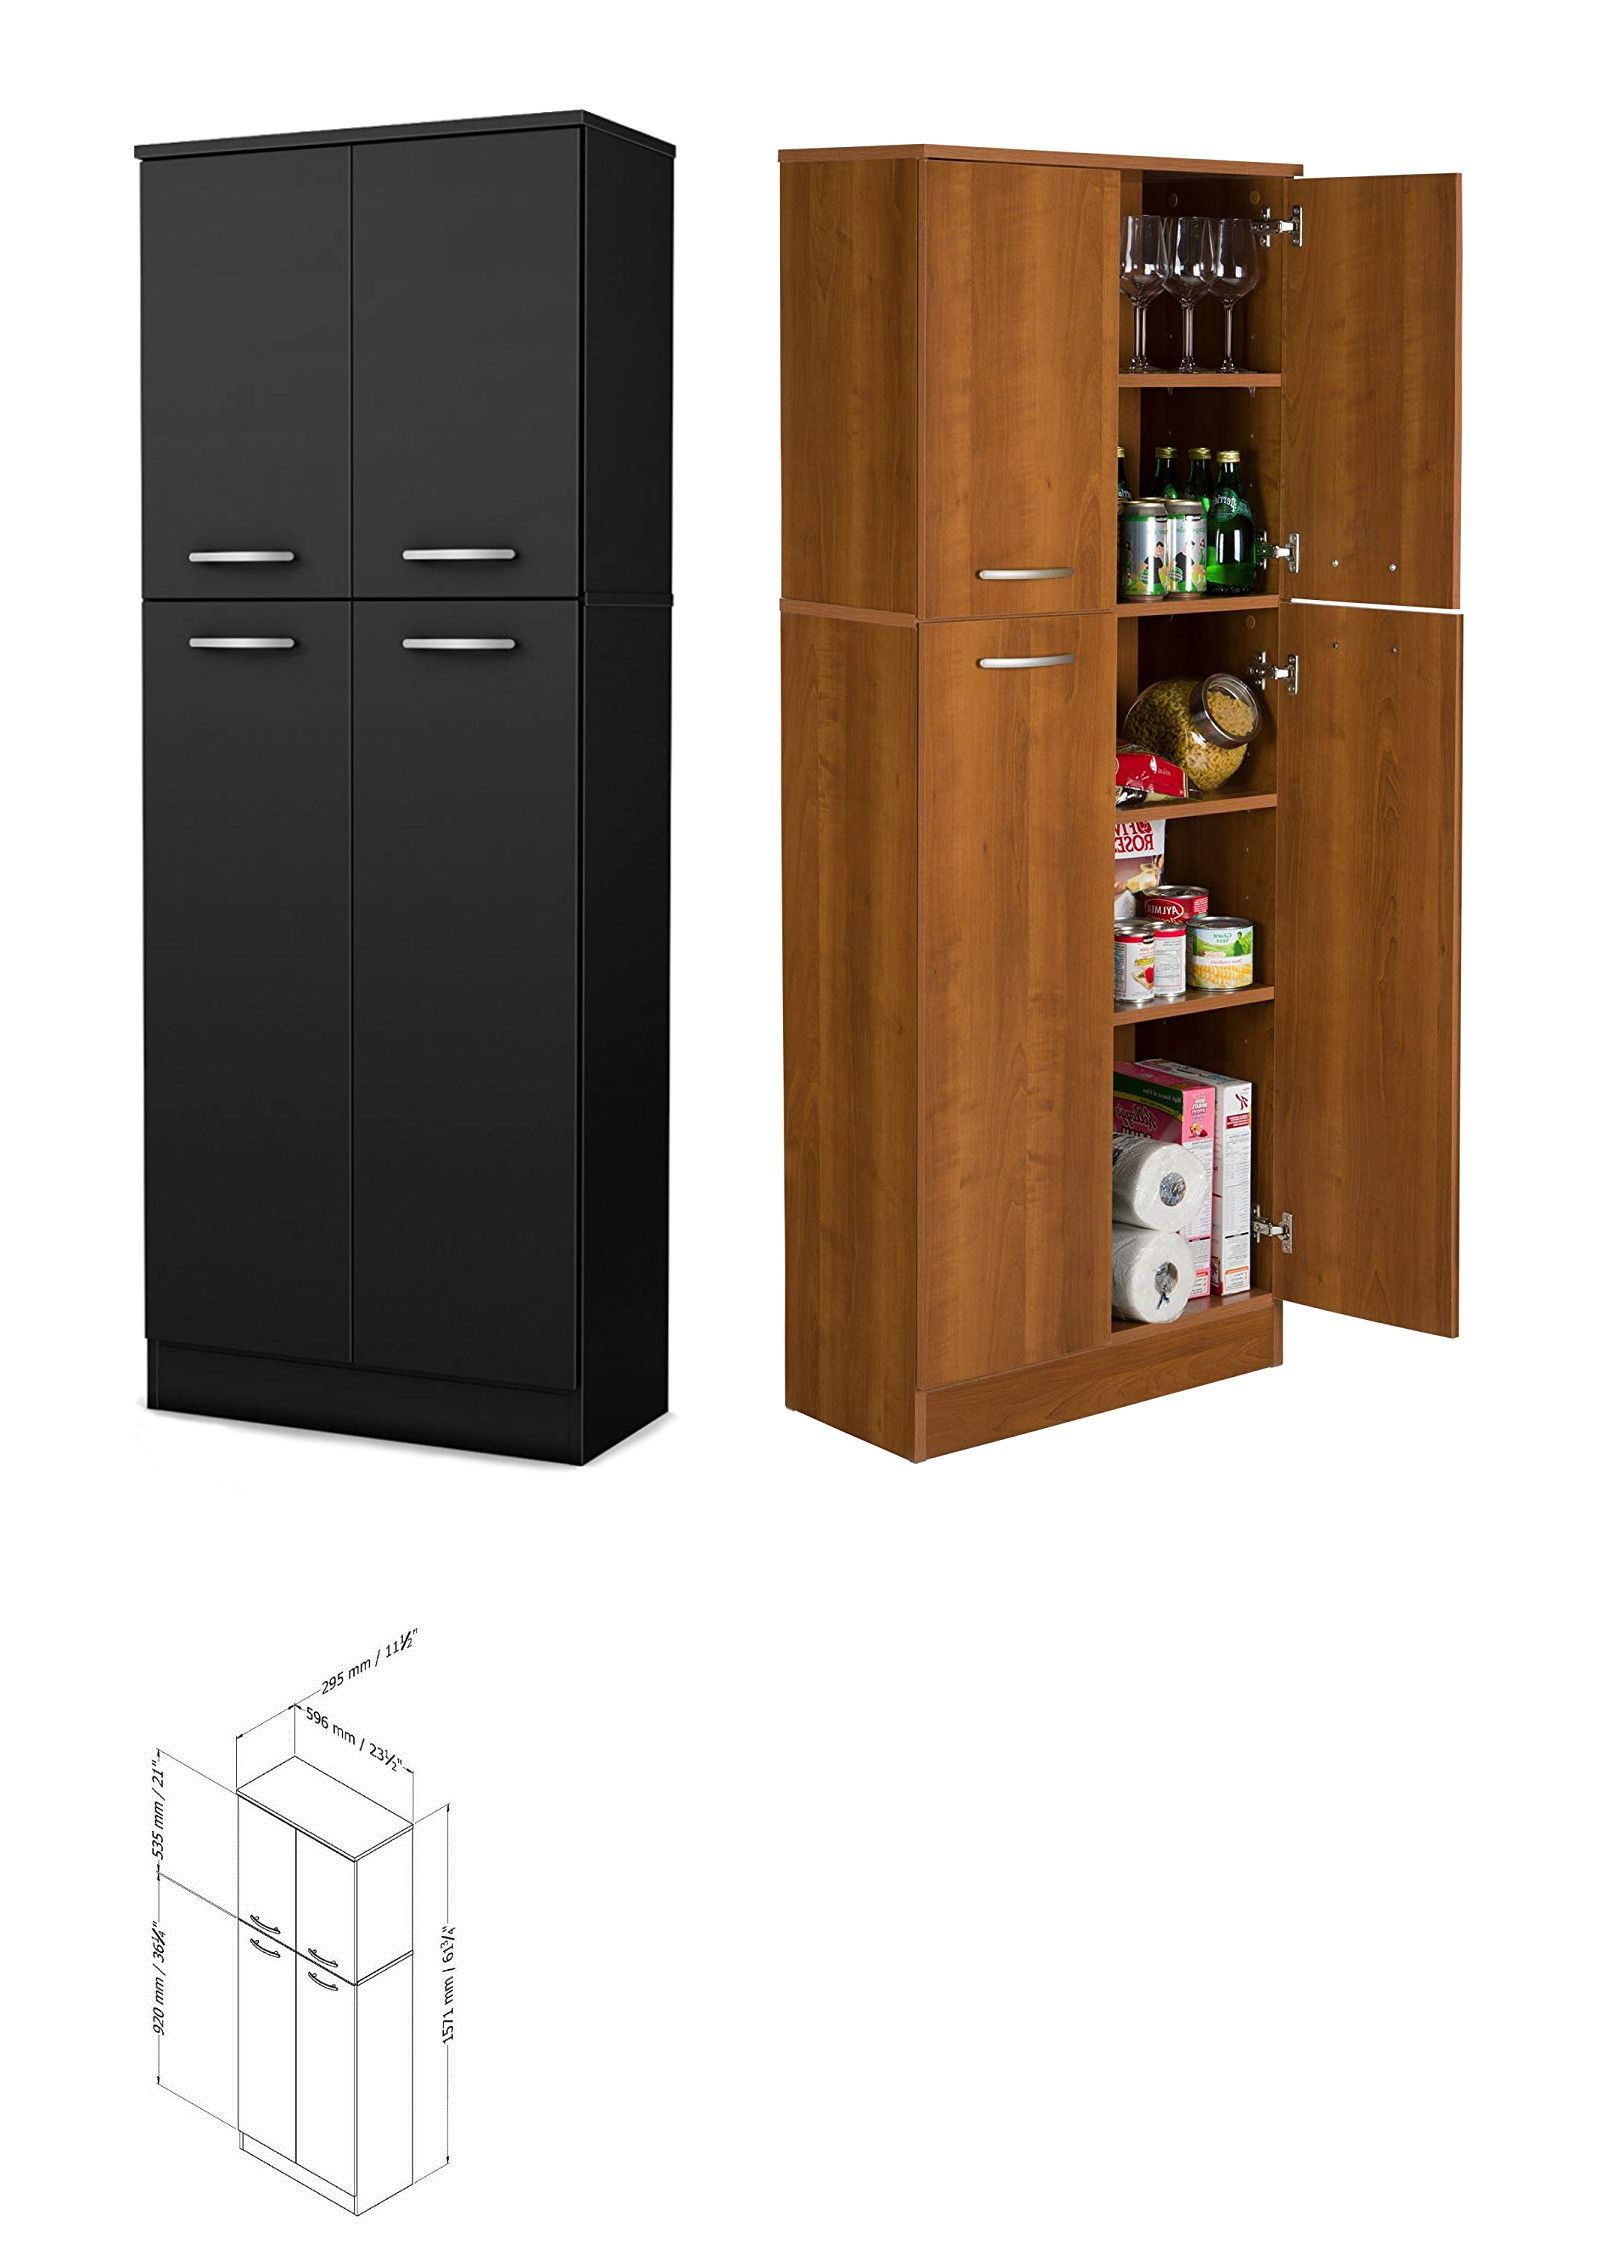 Kitchen Pantry Storage Cabinet Tall 5 Shelf 4 Door Food Organizer Wood Cupboard Ebay Kitchen Pantry Storage Cabinet Kitchen Pantry Storage